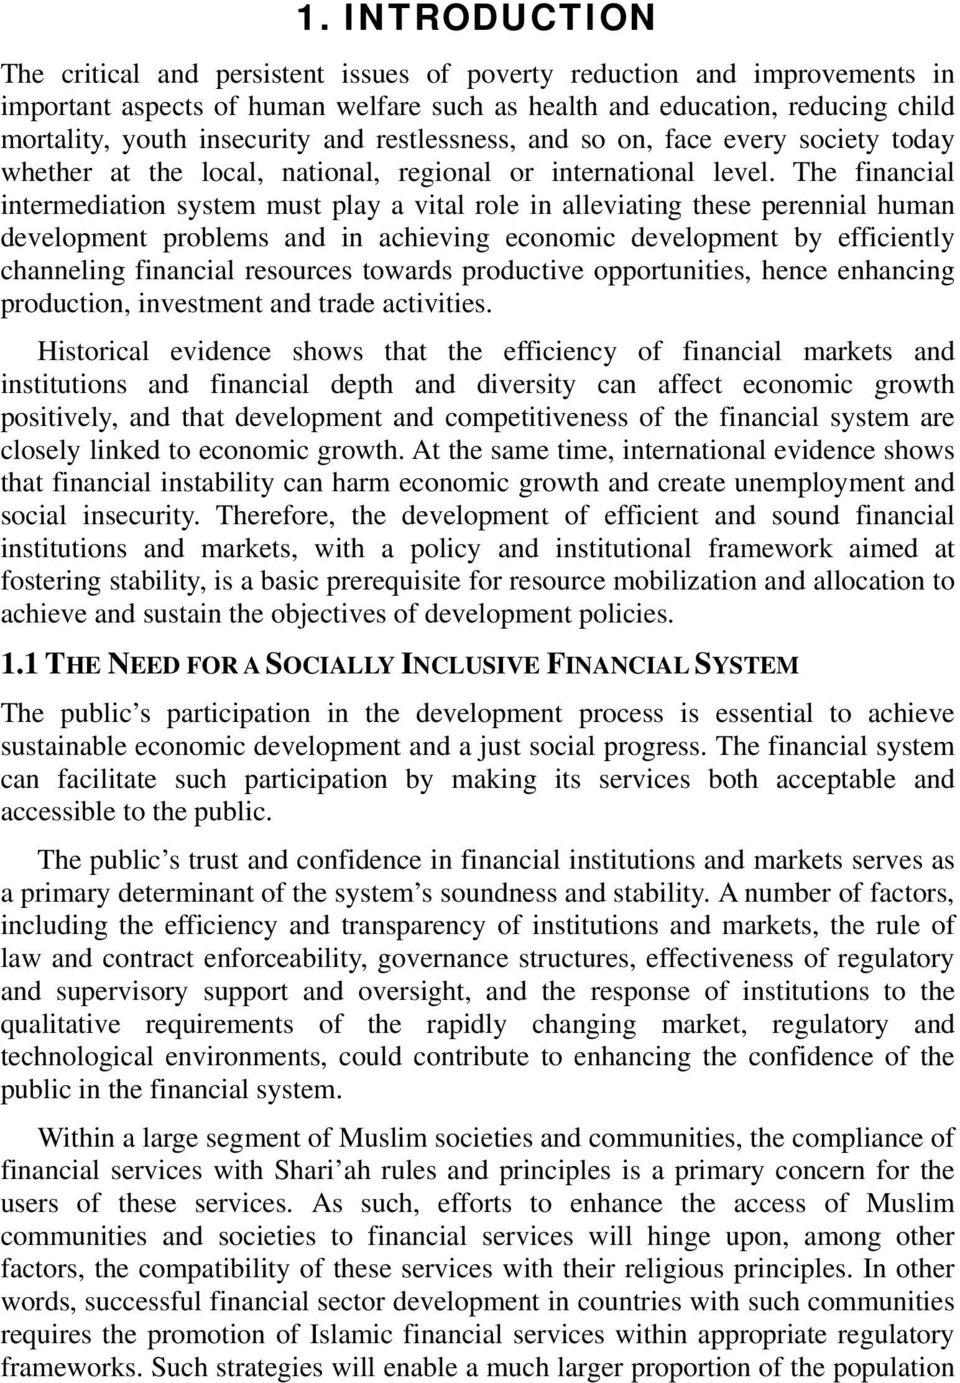 The financial intermediation system must play a vital role in alleviating these perennial human development problems and in achieving economic development by efficiently channeling financial